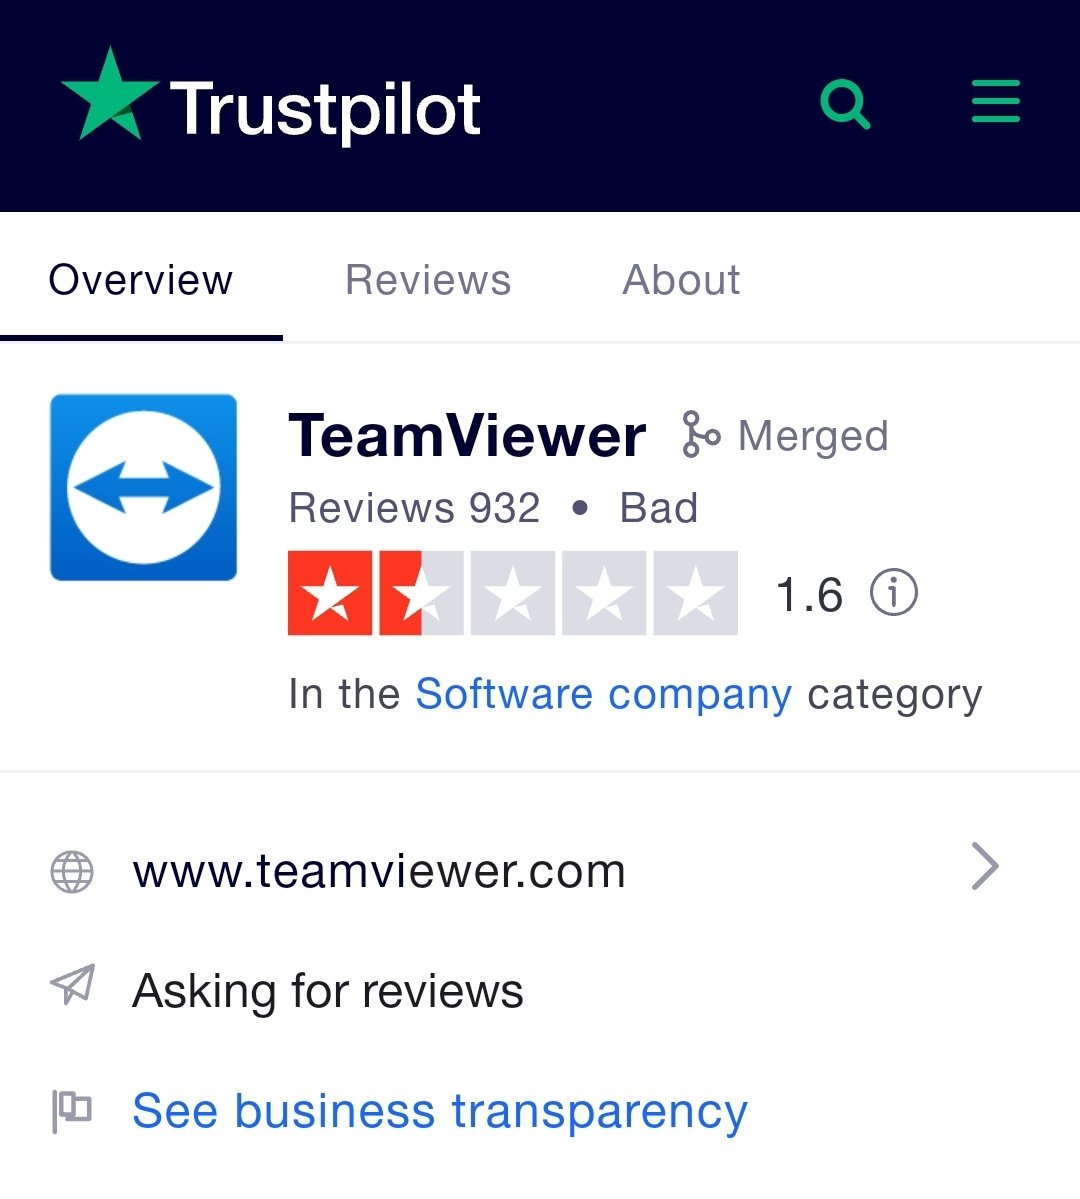 @TeamViewer @wcbleaders I can think of nothing more dangerous than putting your PC in the hands of a company known for scamming and hacking.  #NotAPennyMore #TeamviewerBlog https://t.co/R5urXaamsq